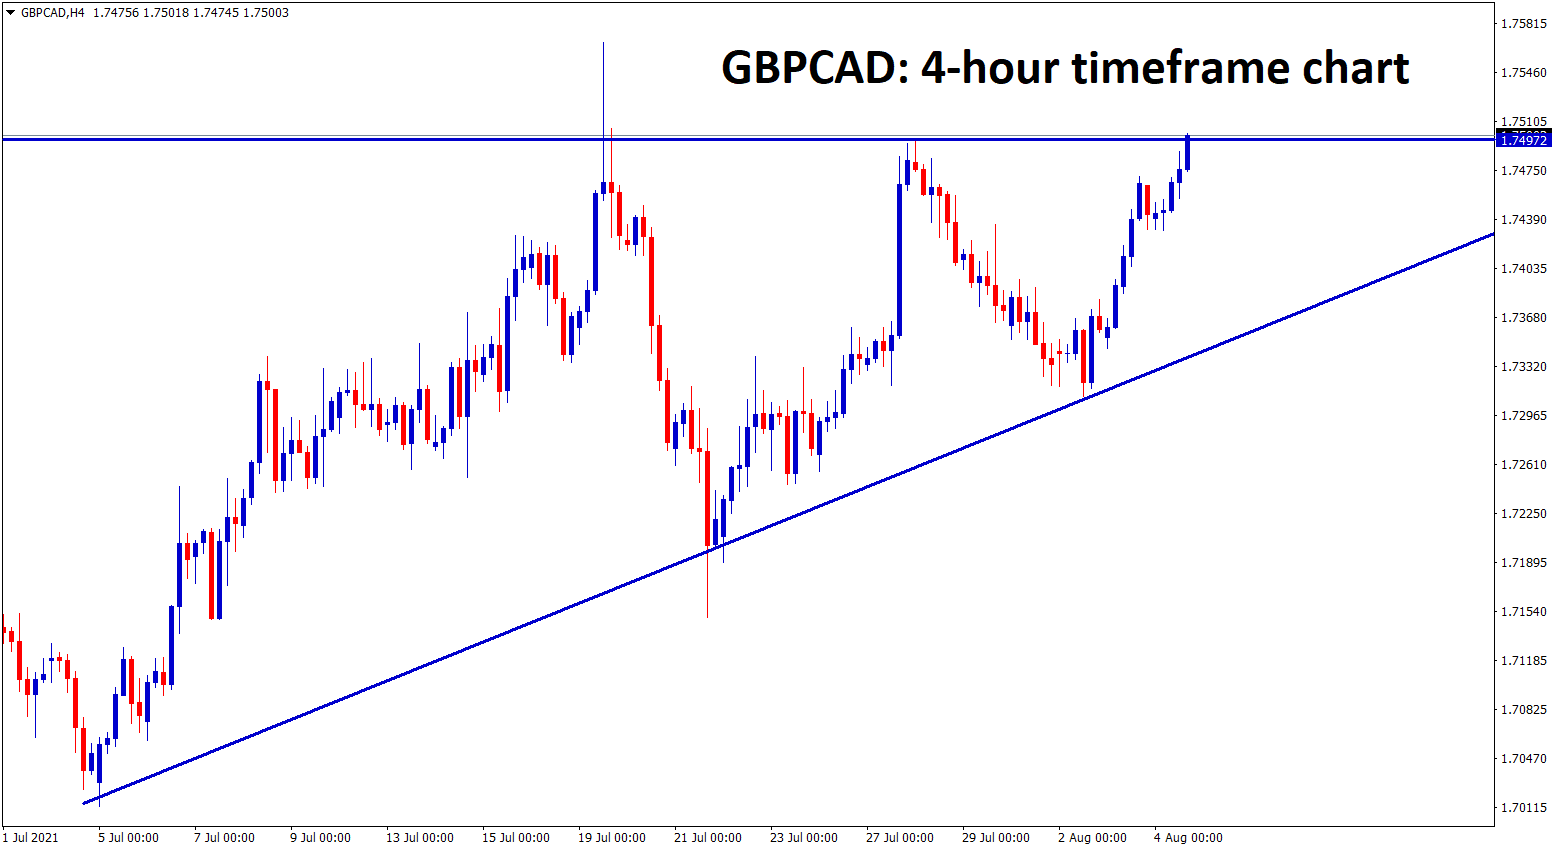 GBPCAD is now at the top level of the Ascending Triangle pattern wait for breakout from this pattern